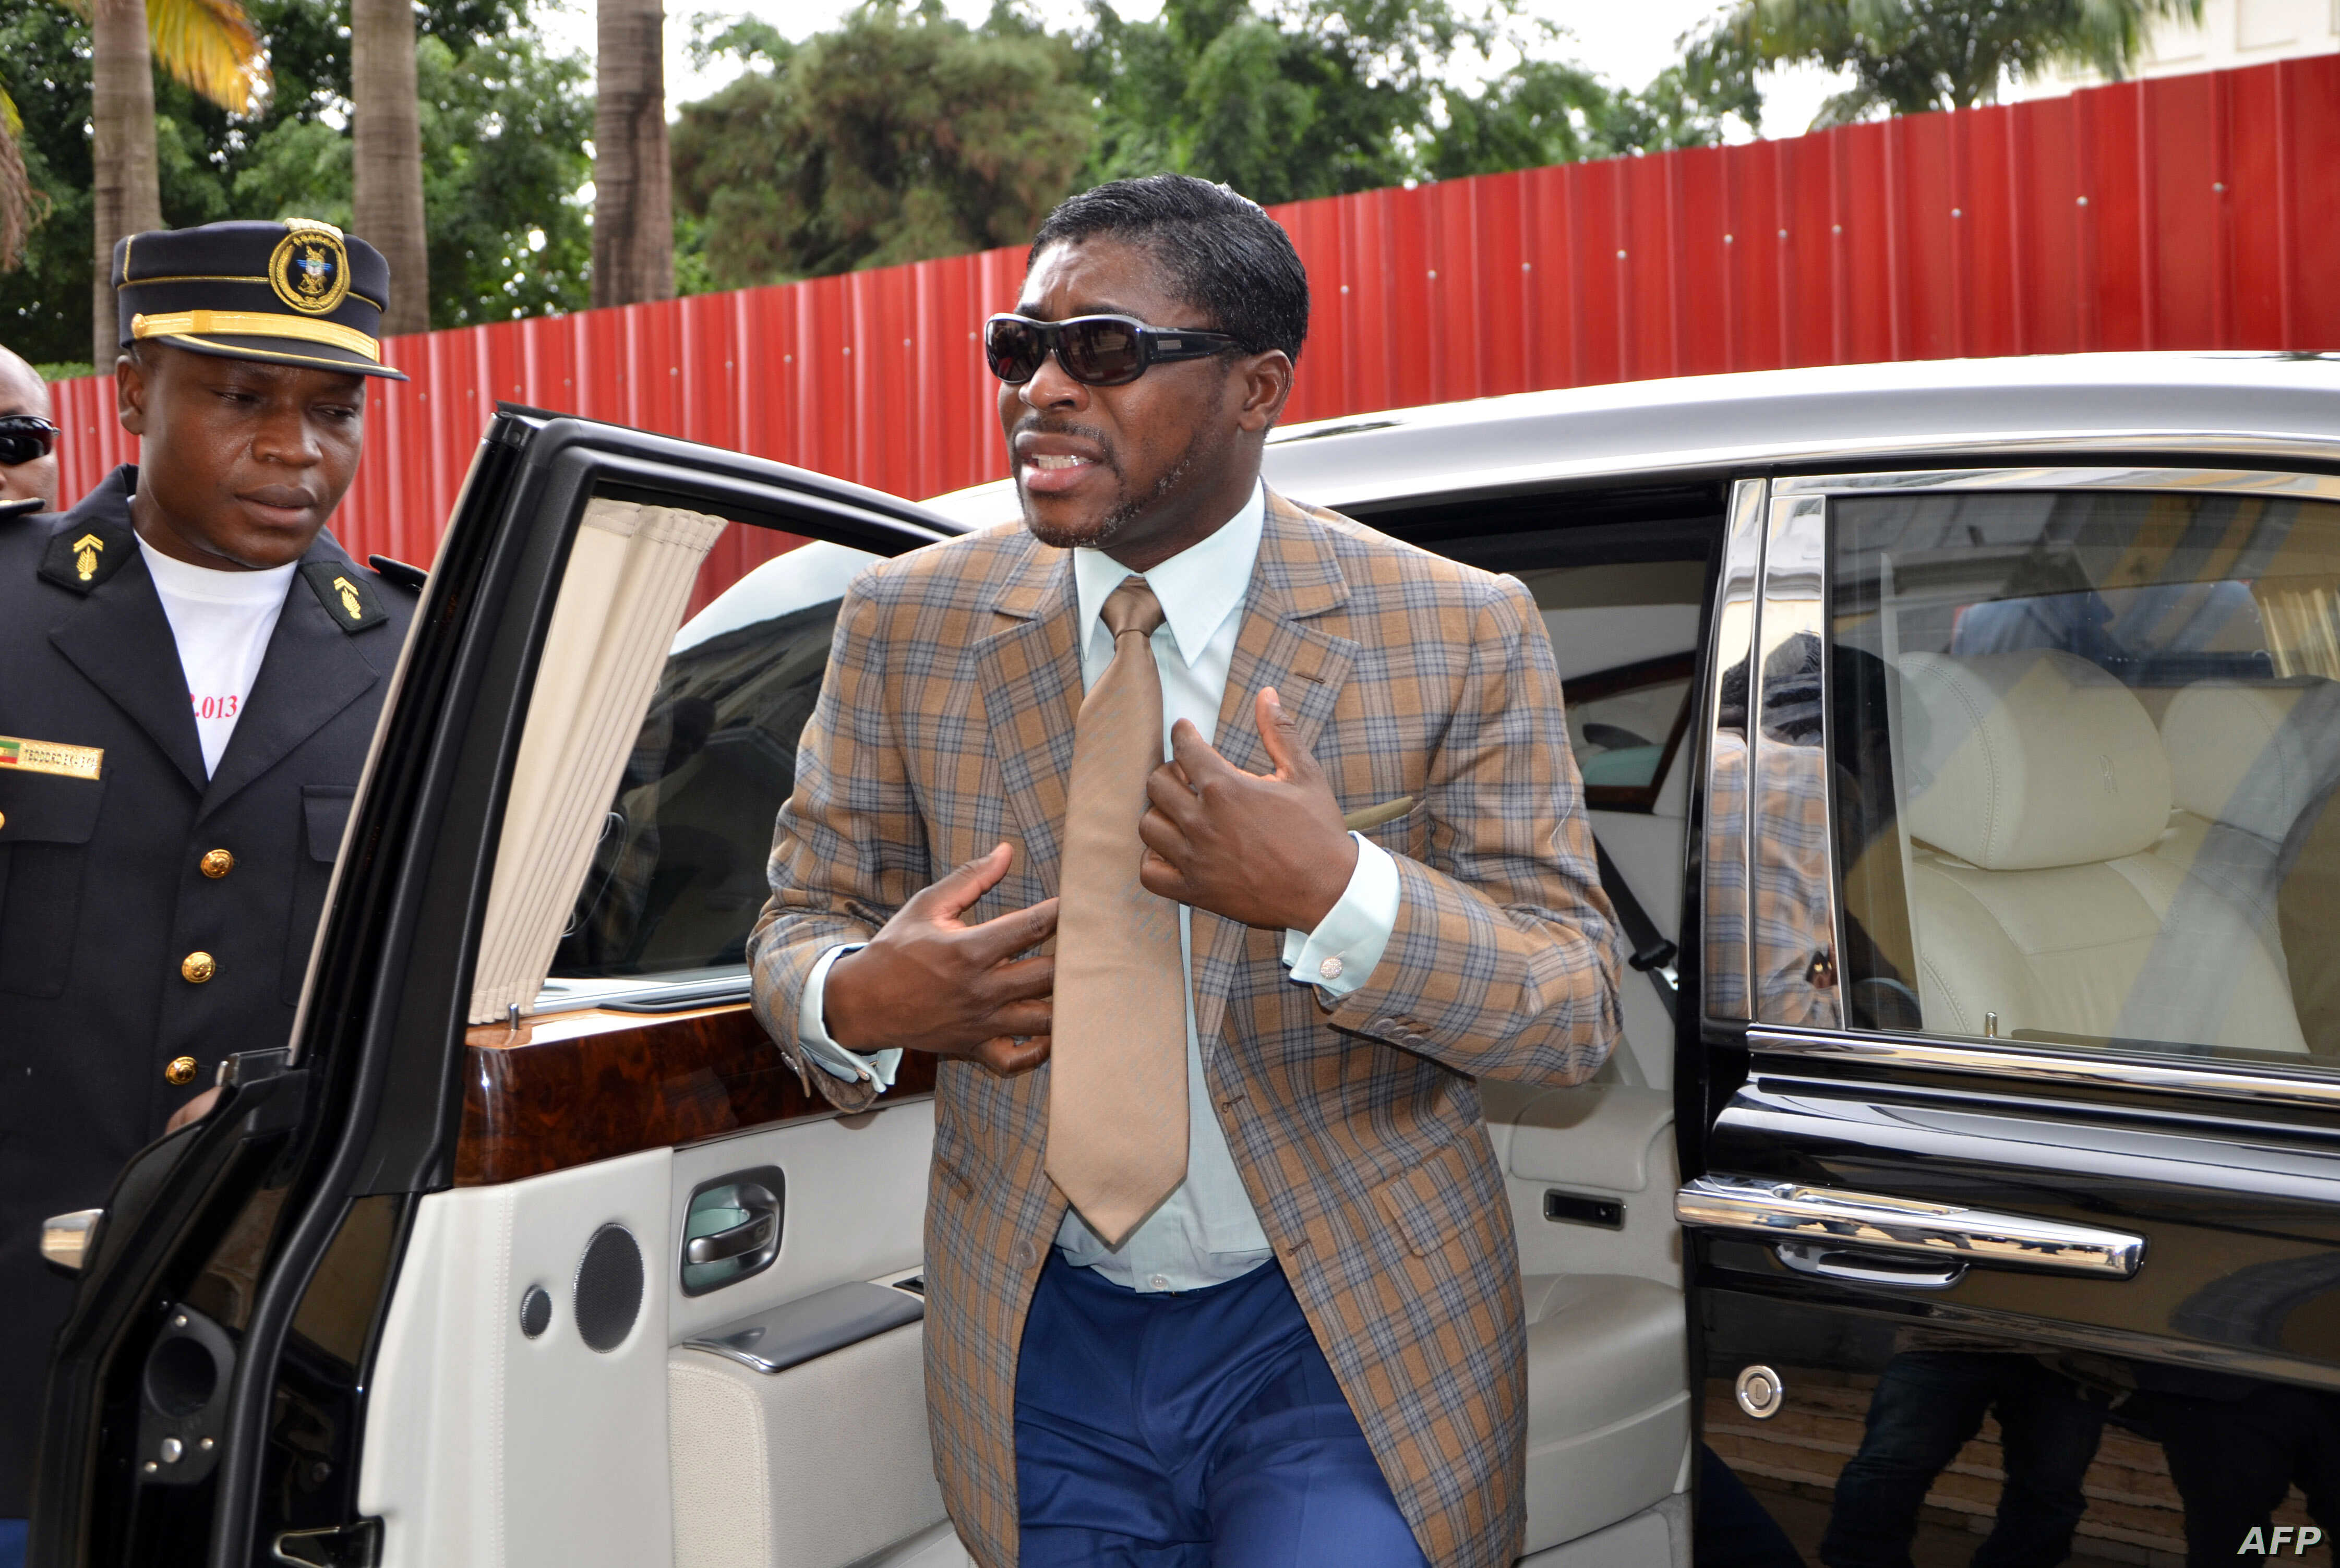 Supercars, Houses and Suits: Equatorial Guinea's Teodorin Obiang | Voice of  America - English